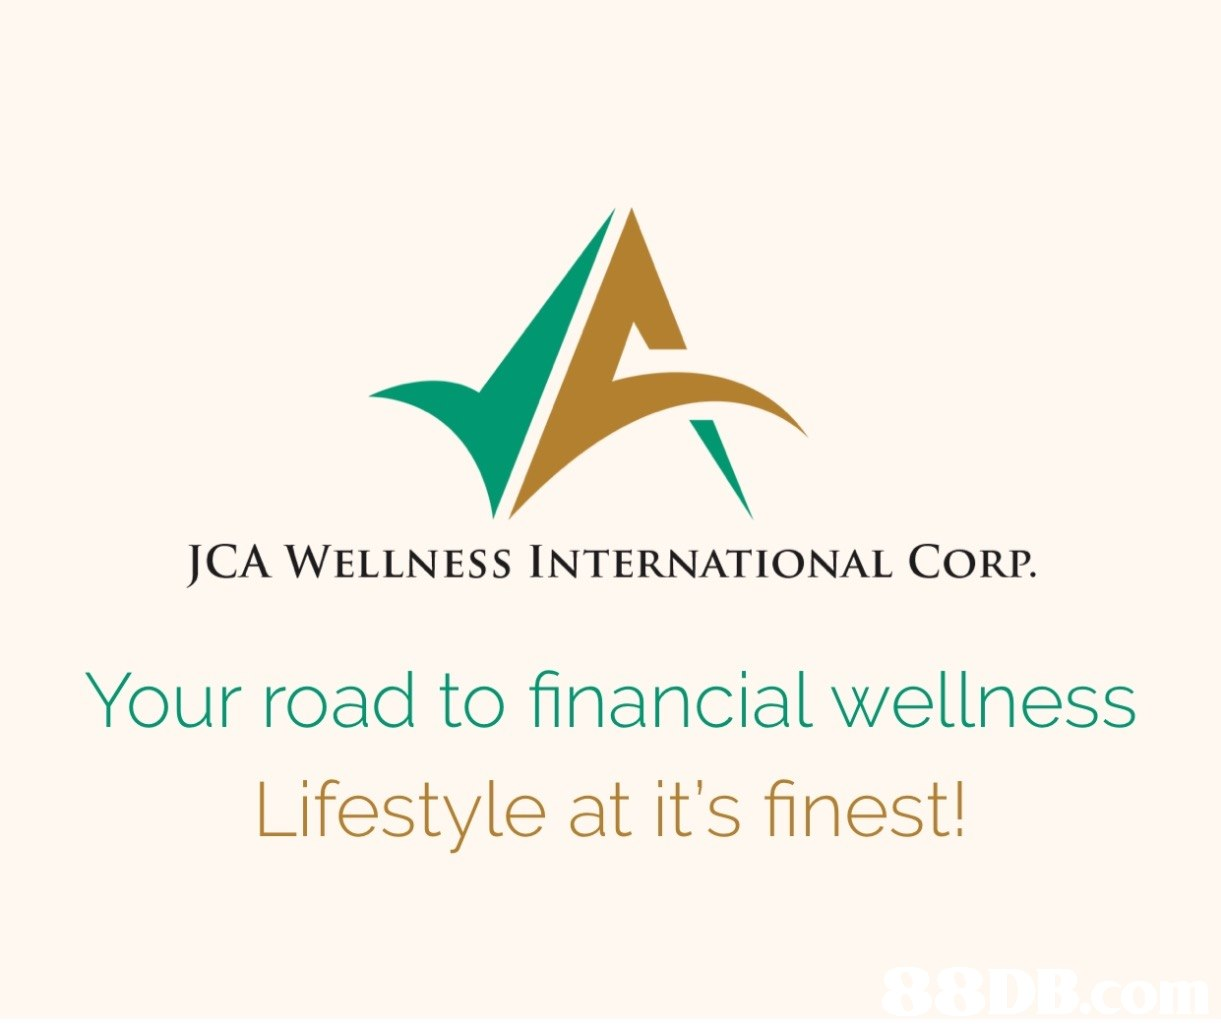 JCA WELLNESS INTERNATIONAL CORP. Your road to financial wellness Lifestyle at it's finest  text